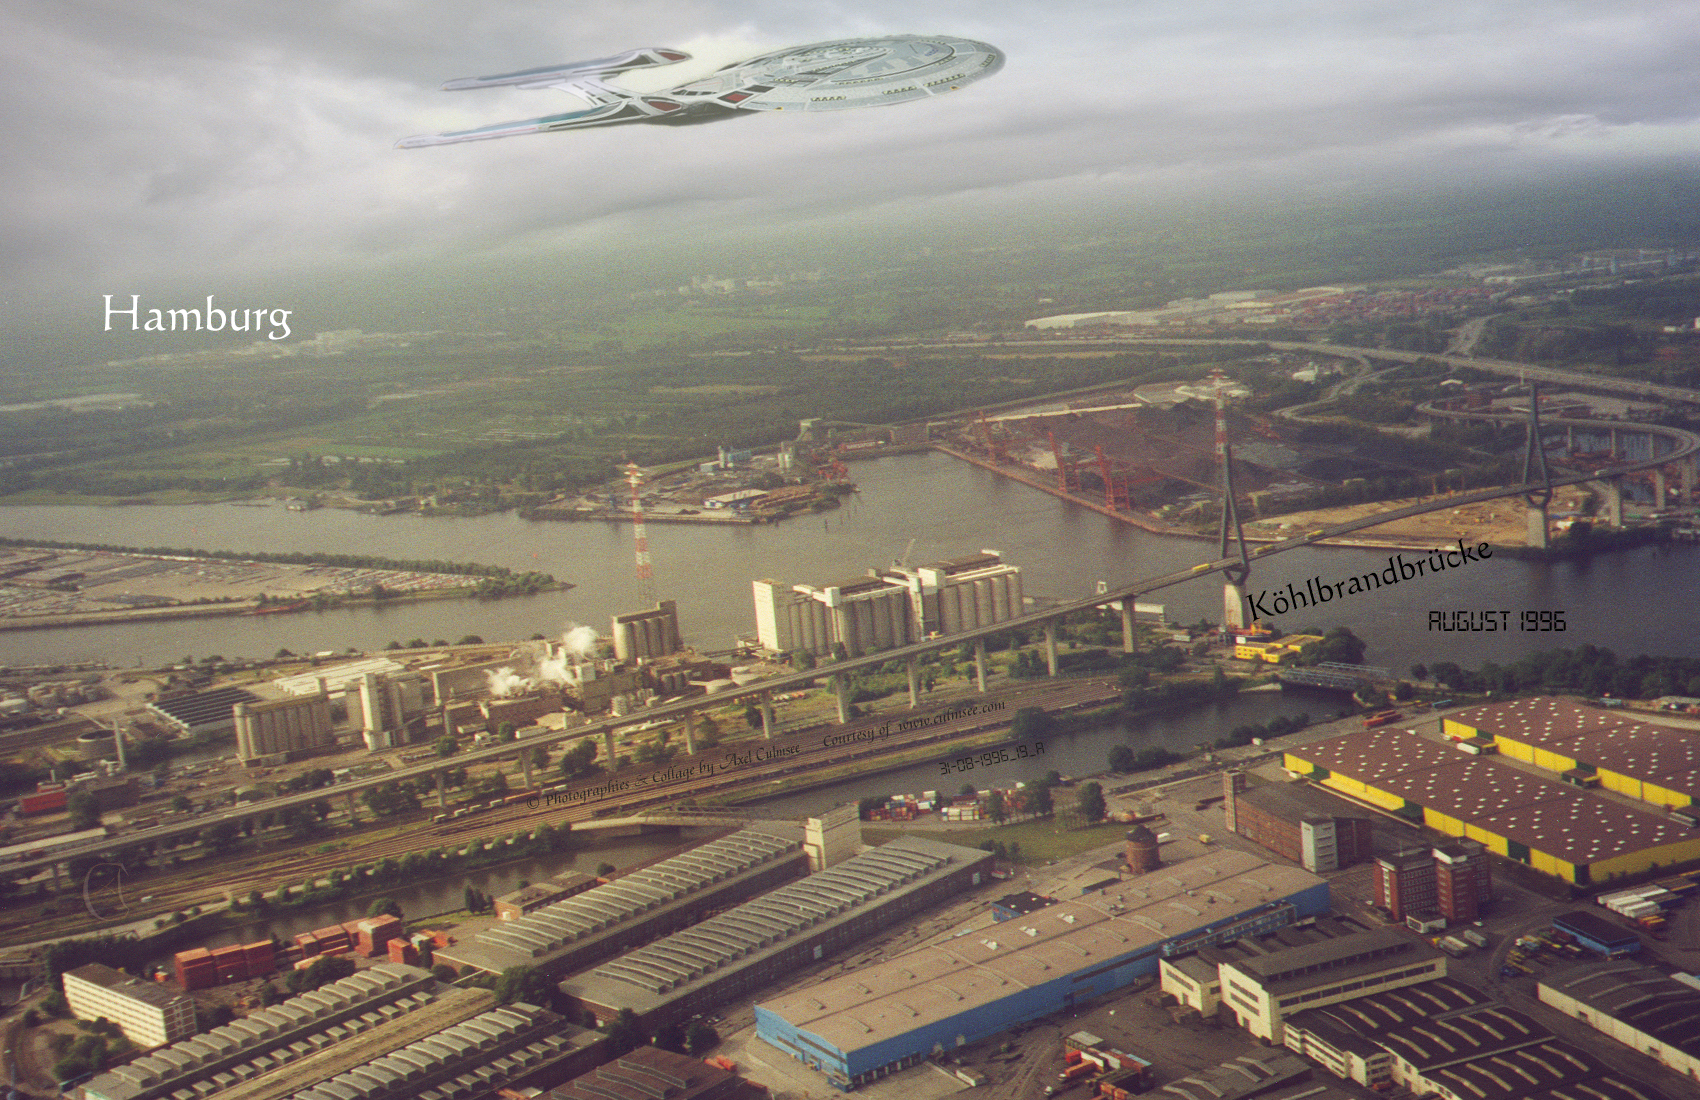 Hamburg sightseeing flight across Koehlbrand bridge with Enterprise-E